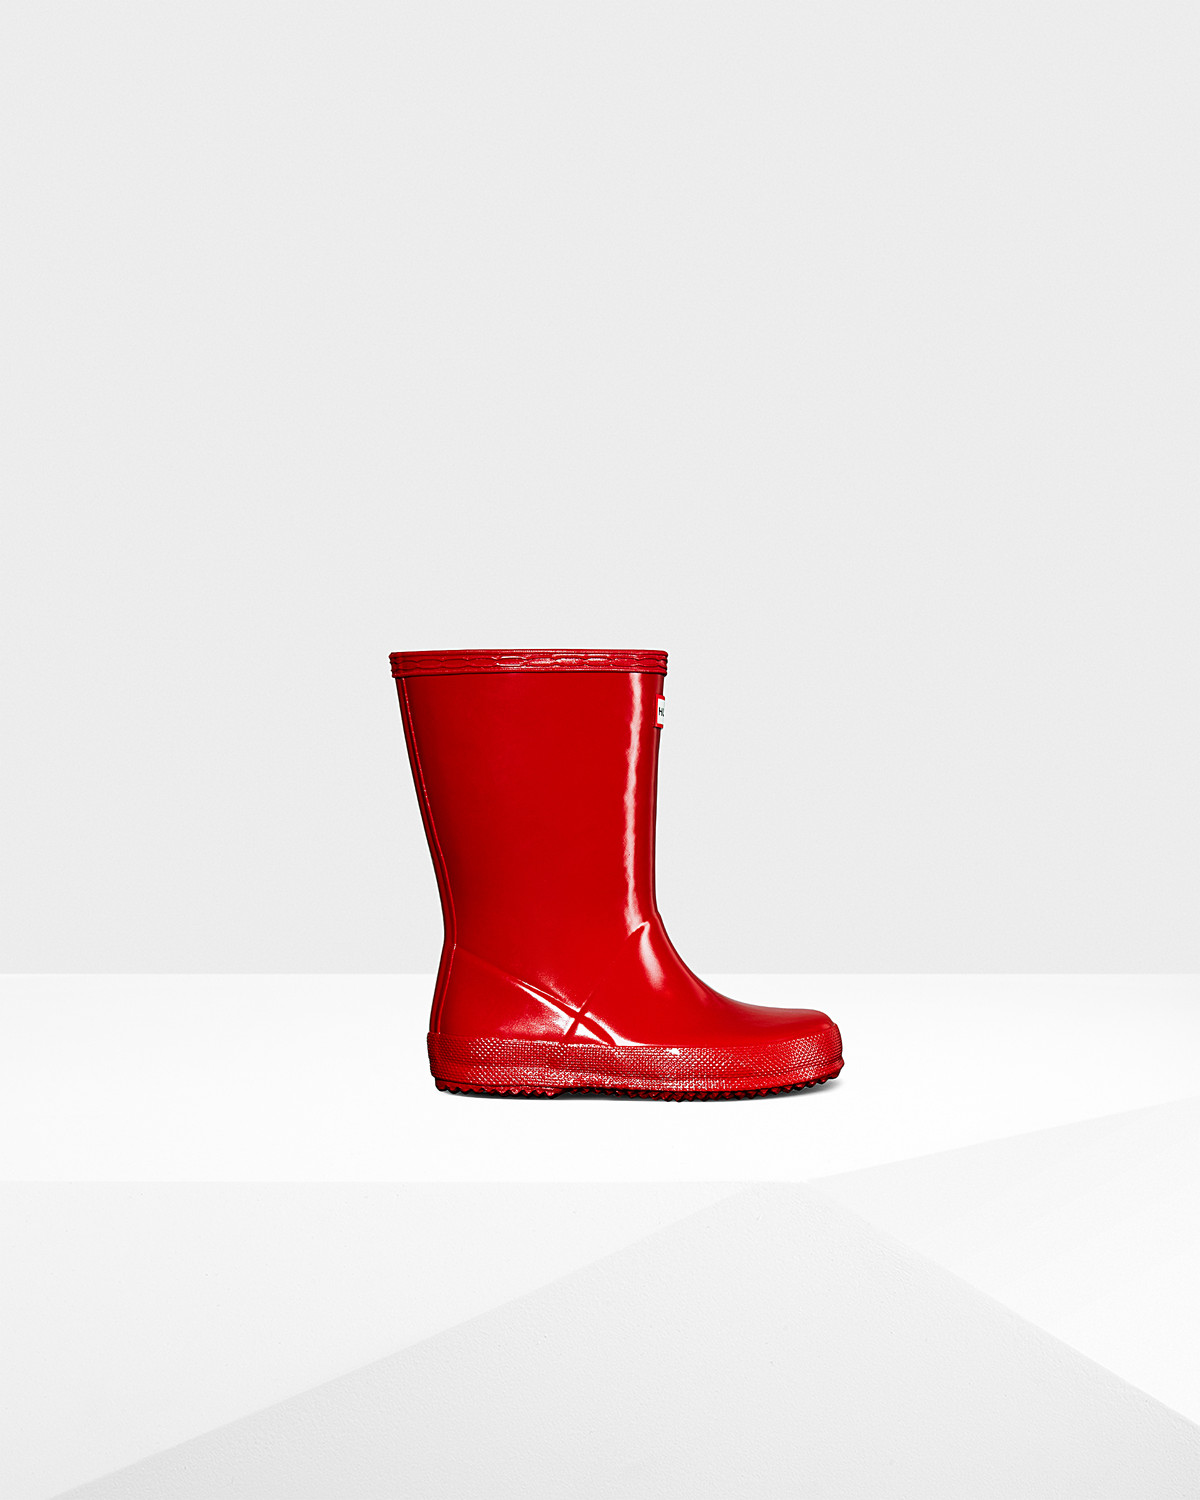 click here to us.hunterboots.com